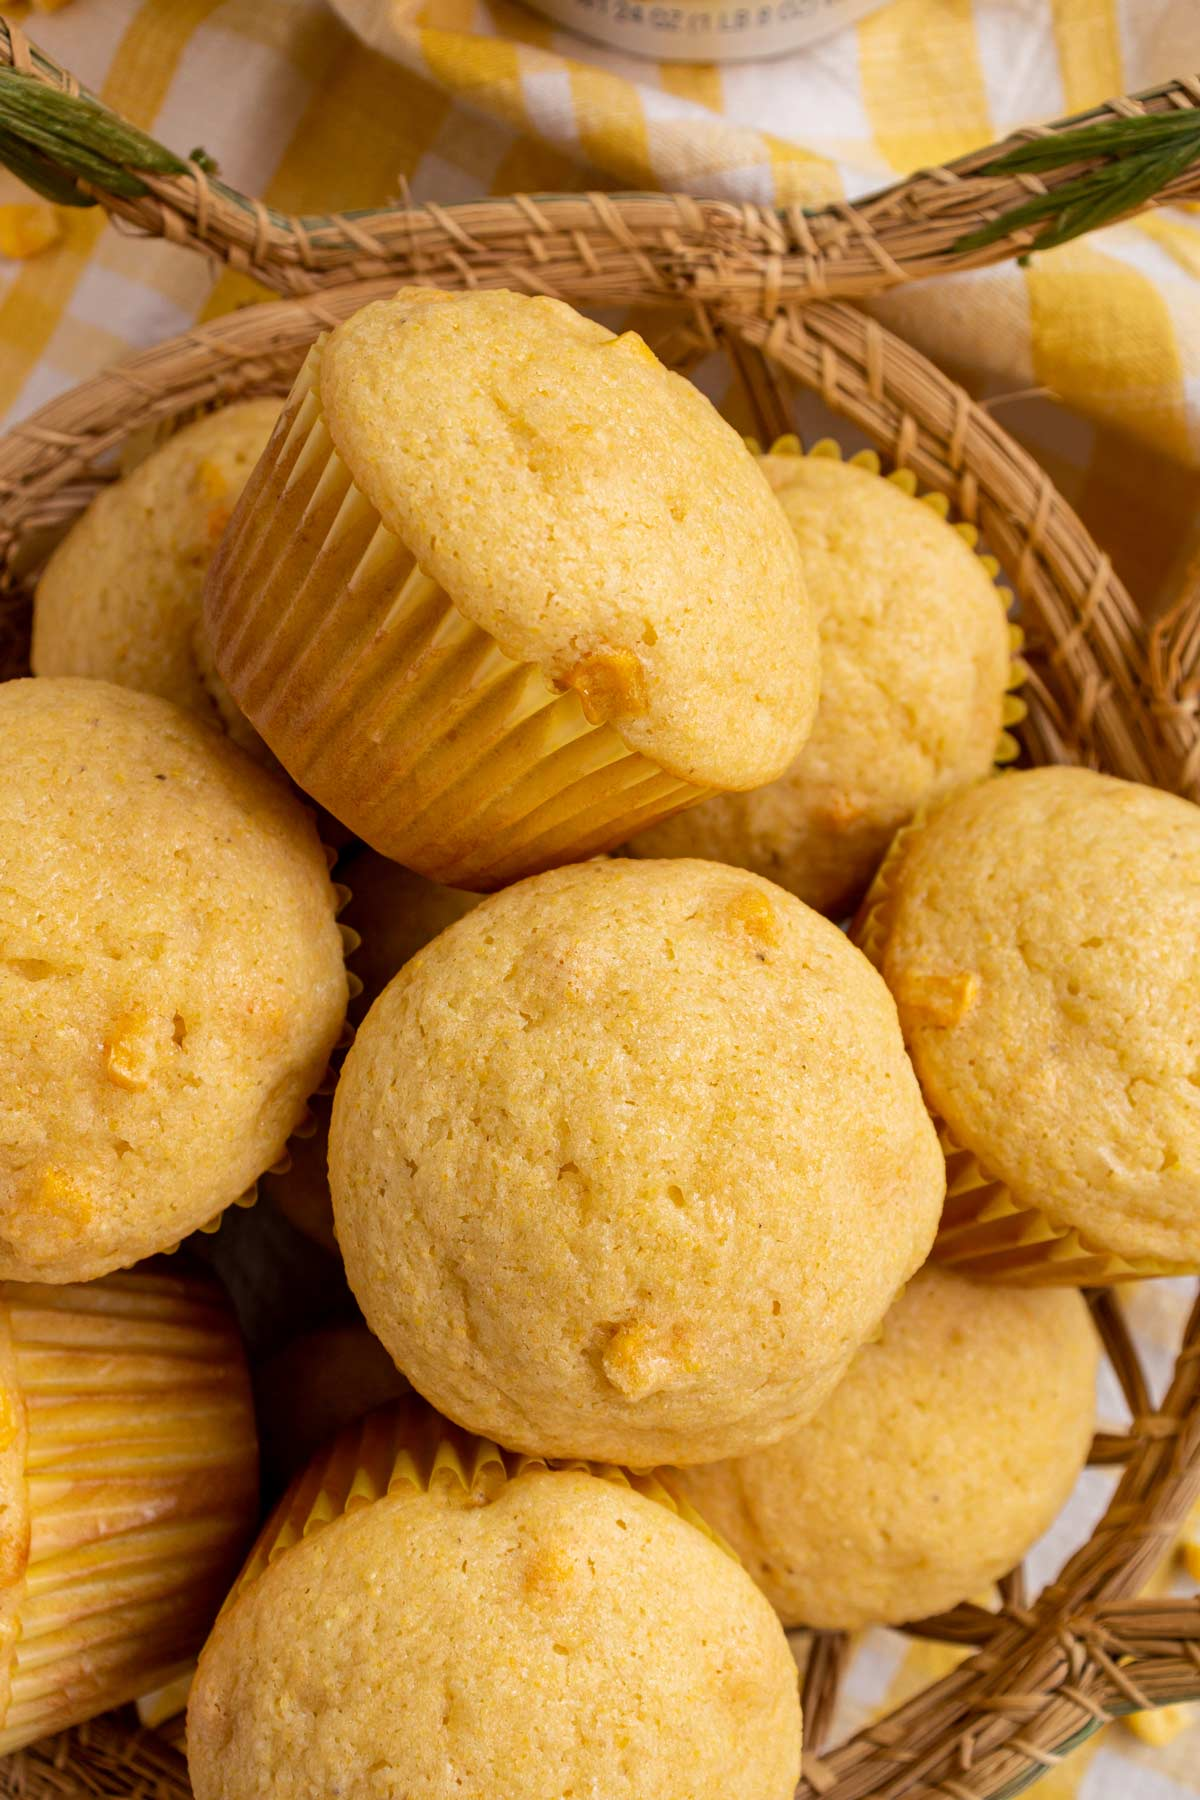 A closeup of corn muffins with yellow paper liners in a basket.